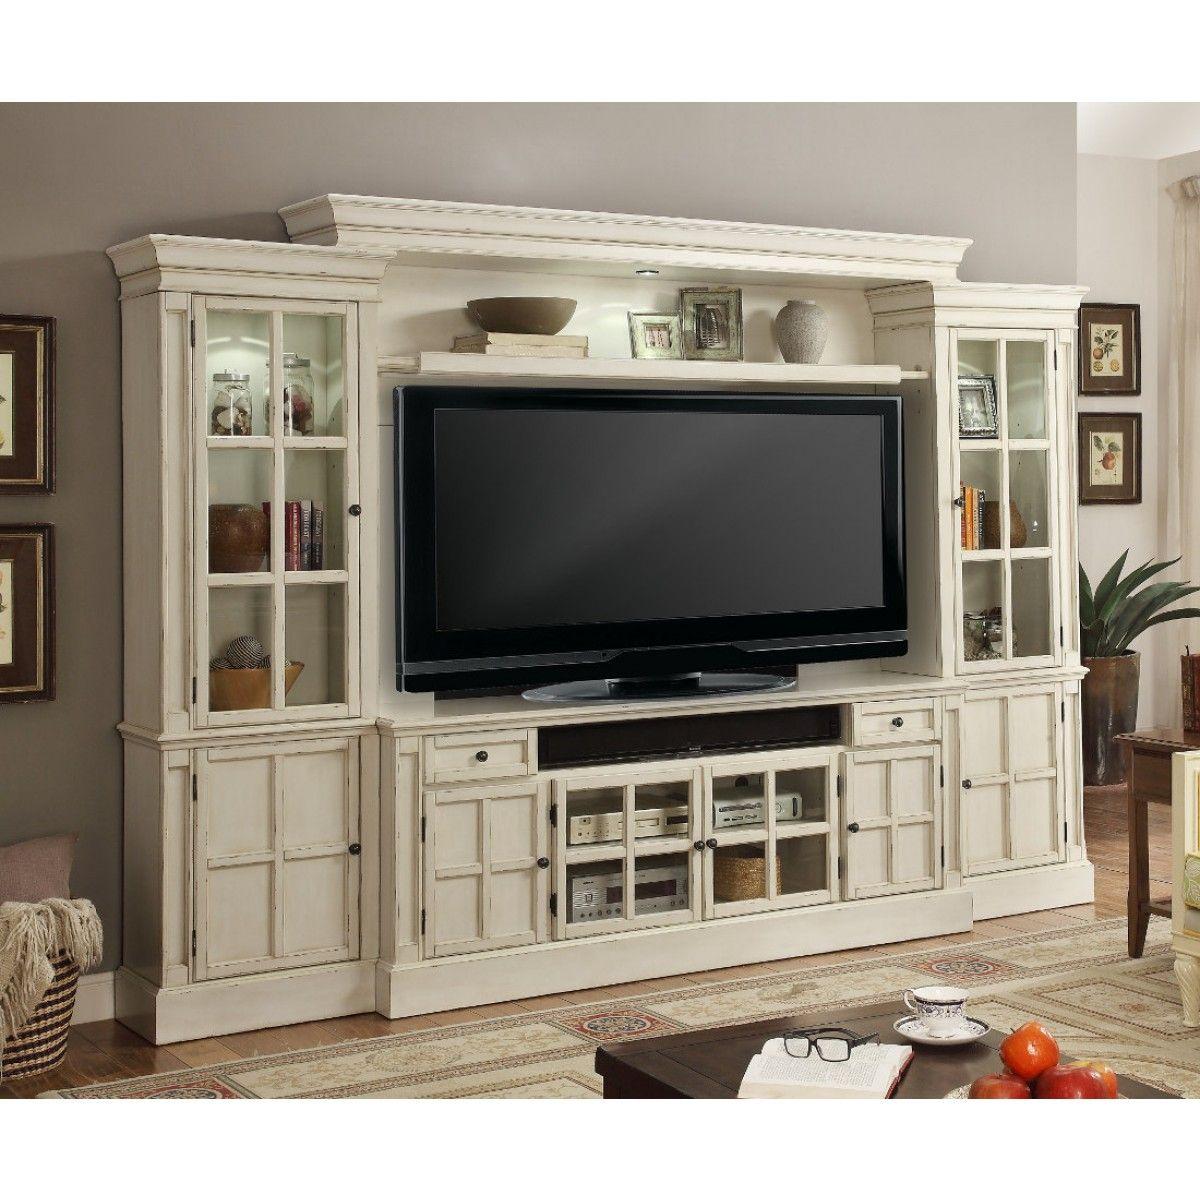 cosy drywall entertainment centers. Buy the Parker House Charlotte 72 Inch TV Console Entertainment Wall from  Furniture Crate where you ll also find lowest prices on all 4Pc in White